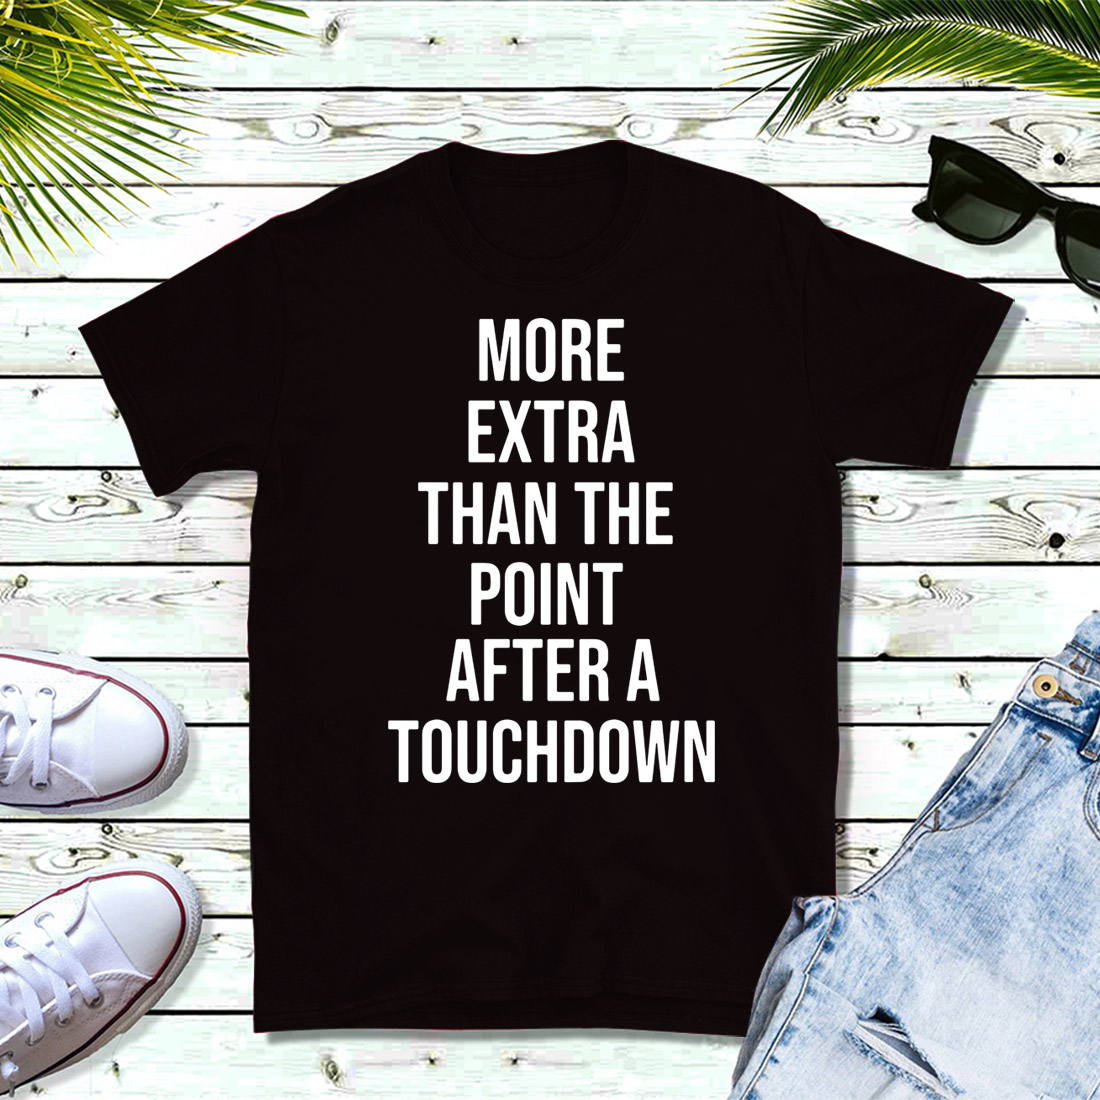 More extra than the point after a touchdown shirt